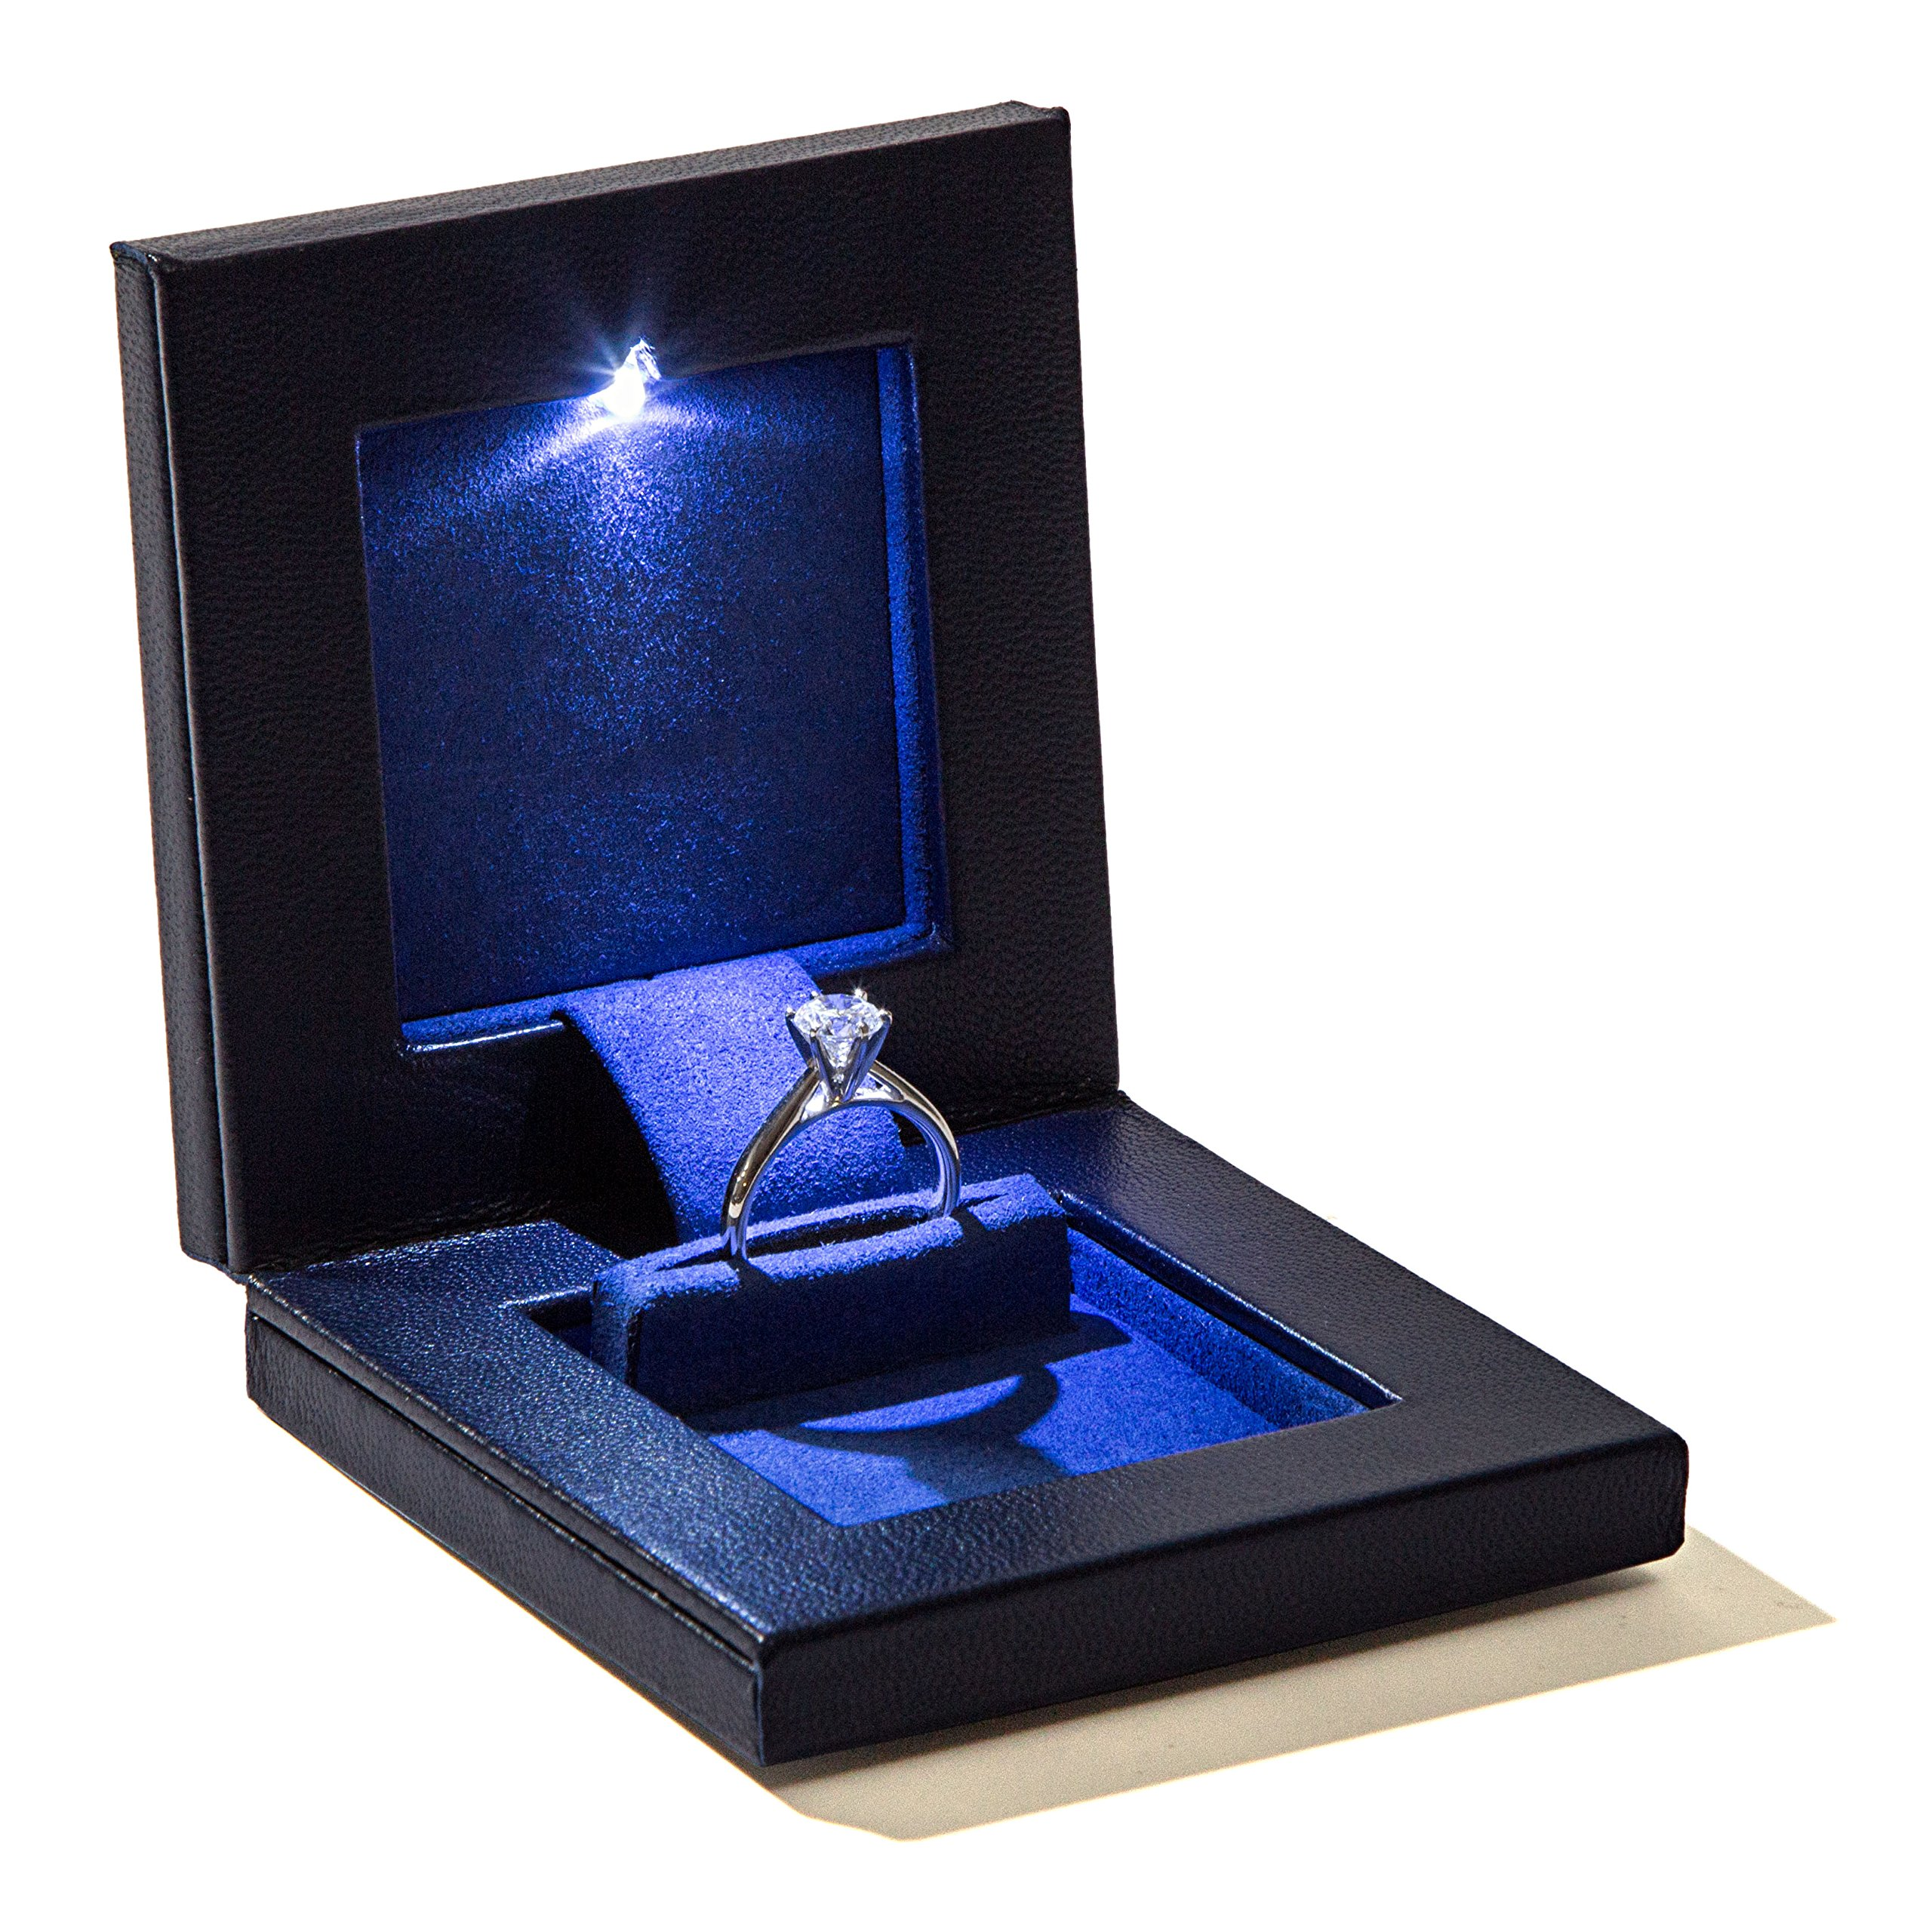 Parker Square Secret Night Box Light up LED, The World's Best Slim Engagement Ring Box by Parker Square (Image #1)